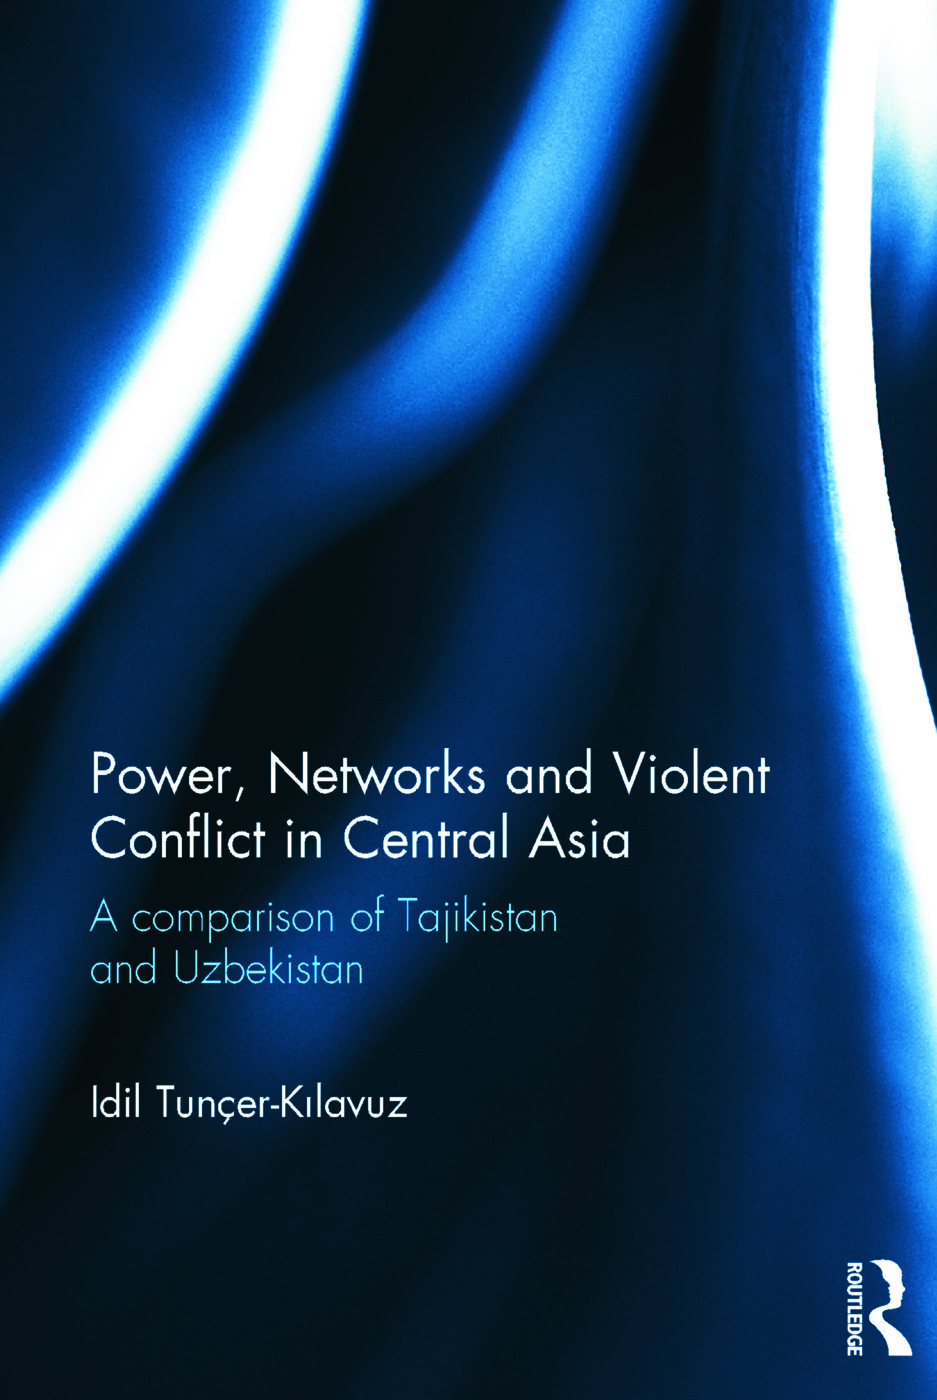 Power, Networks and Violent Conflict in Central Asia: A Comparison of Tajikistan and Uzbekistan book cover